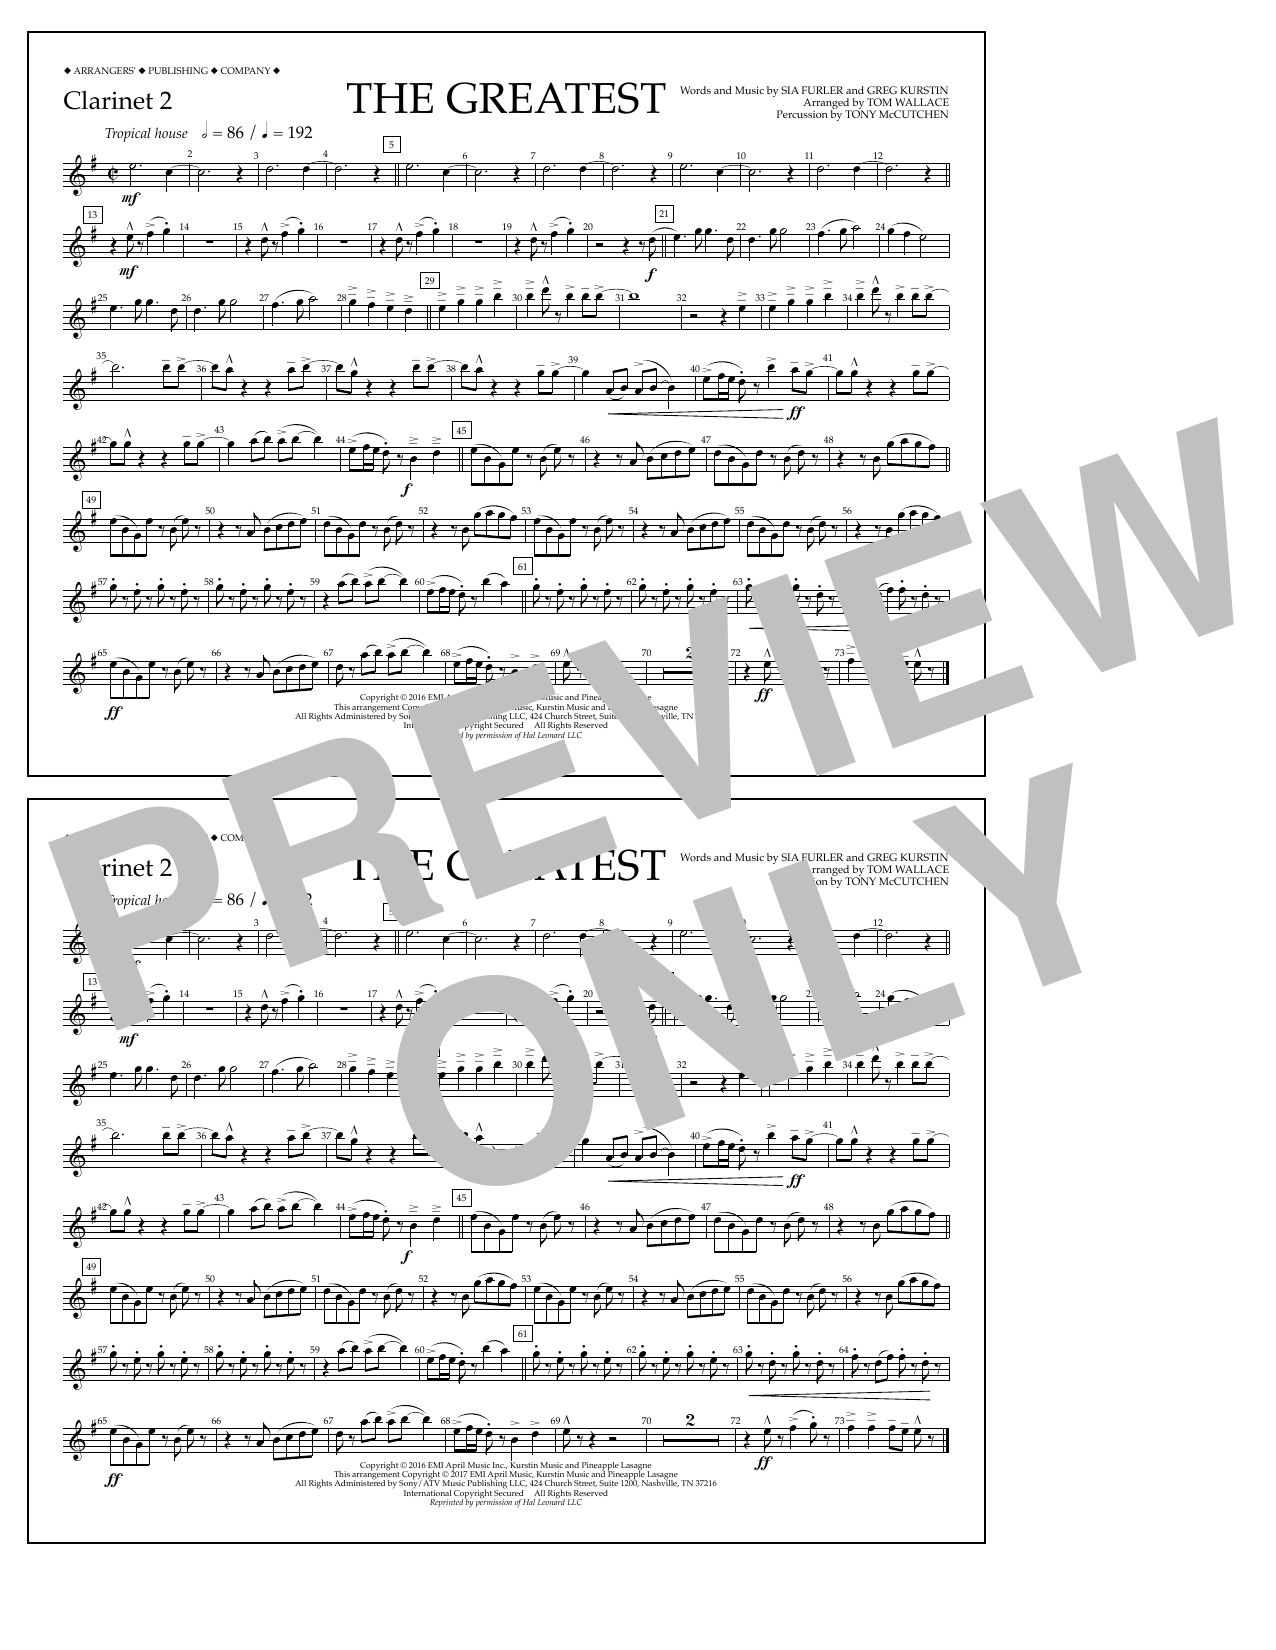 The Greatest - Clarinet 2 Sheet Music